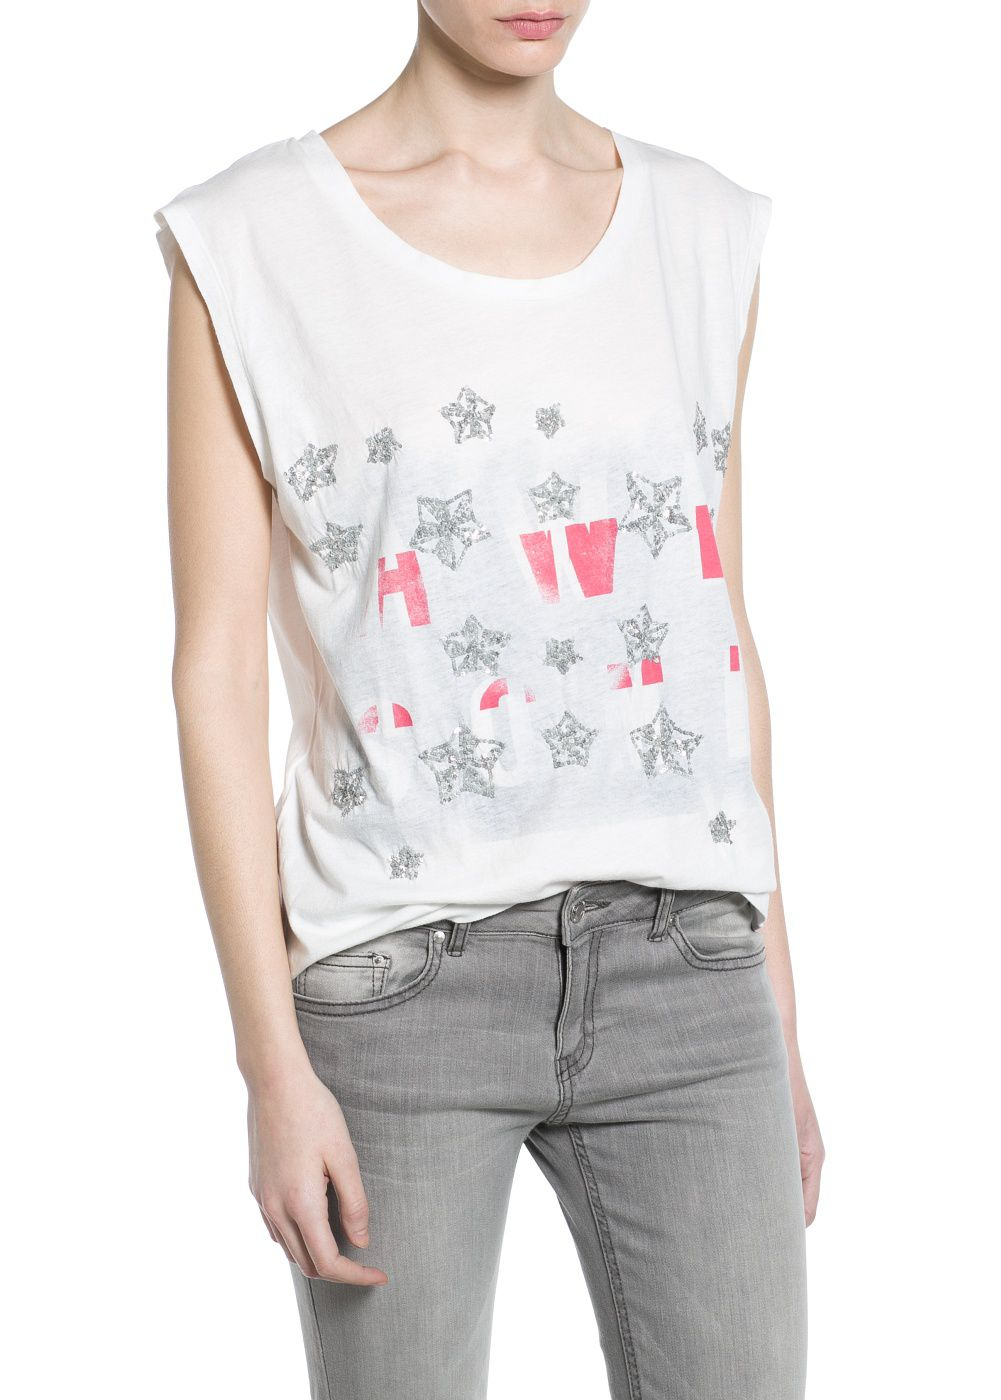 Sequin printed t-shirt